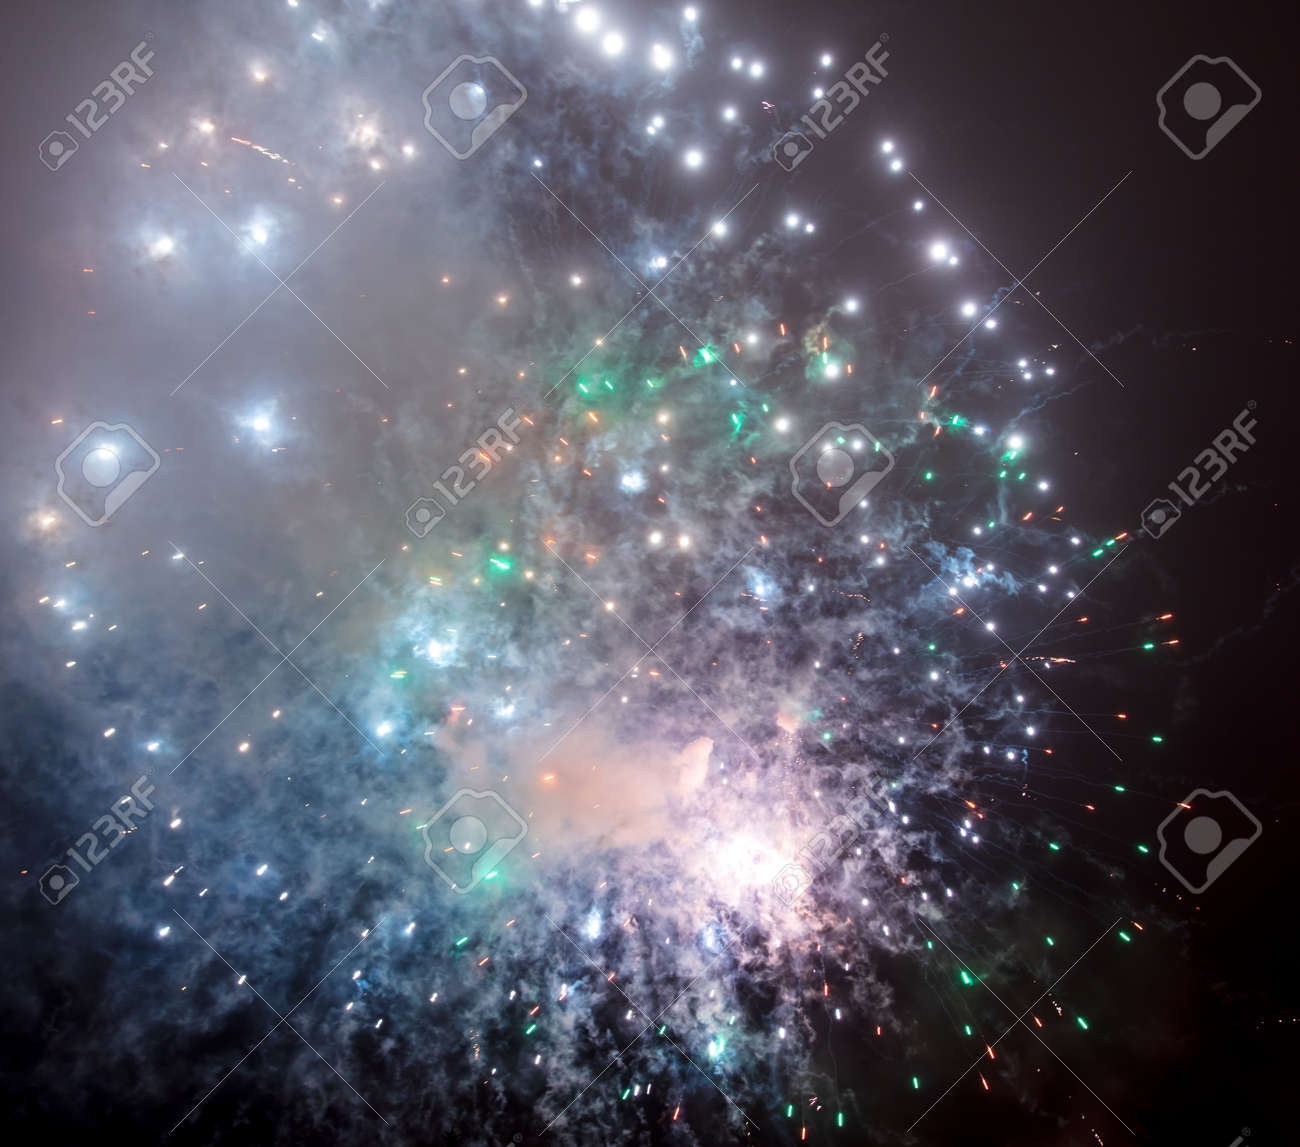 Beautiful sparks from fireworks in the sky at night. - 121326145